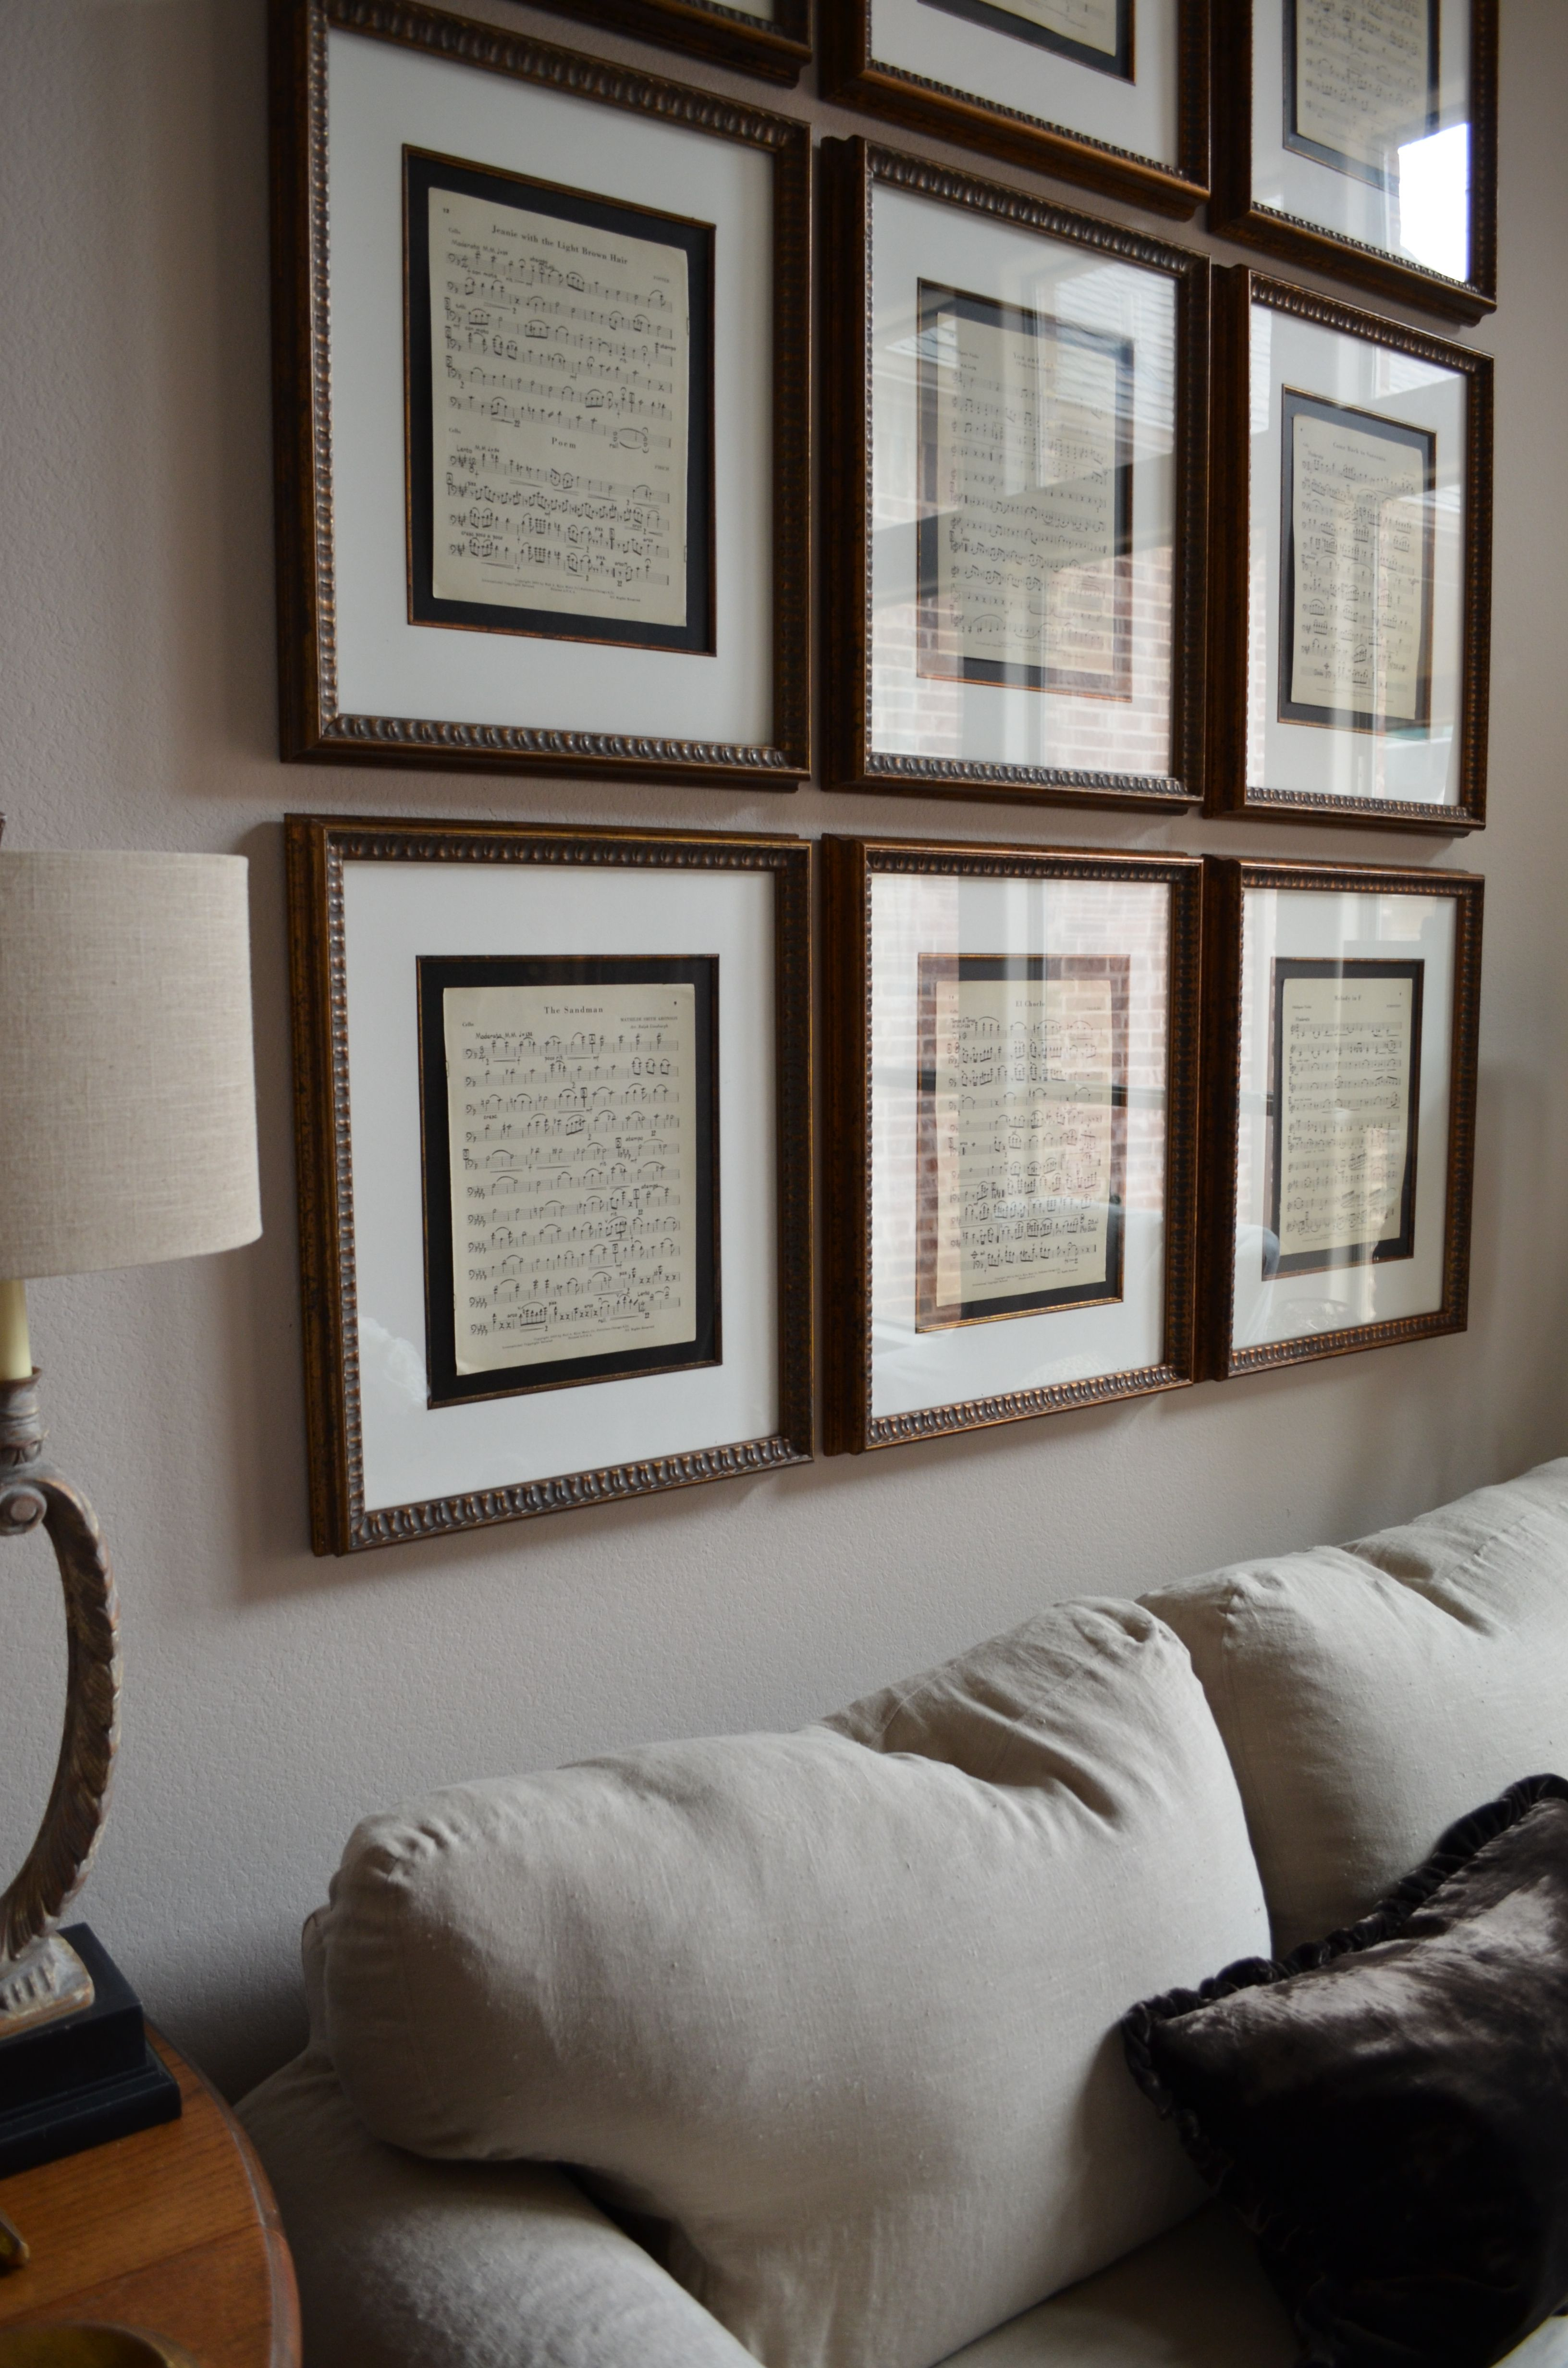 Framed Sheet Music Love Her Idea Of Letting The Black Background Show For Contrast Wall Decor Living Room Framed Sheet Music Decor